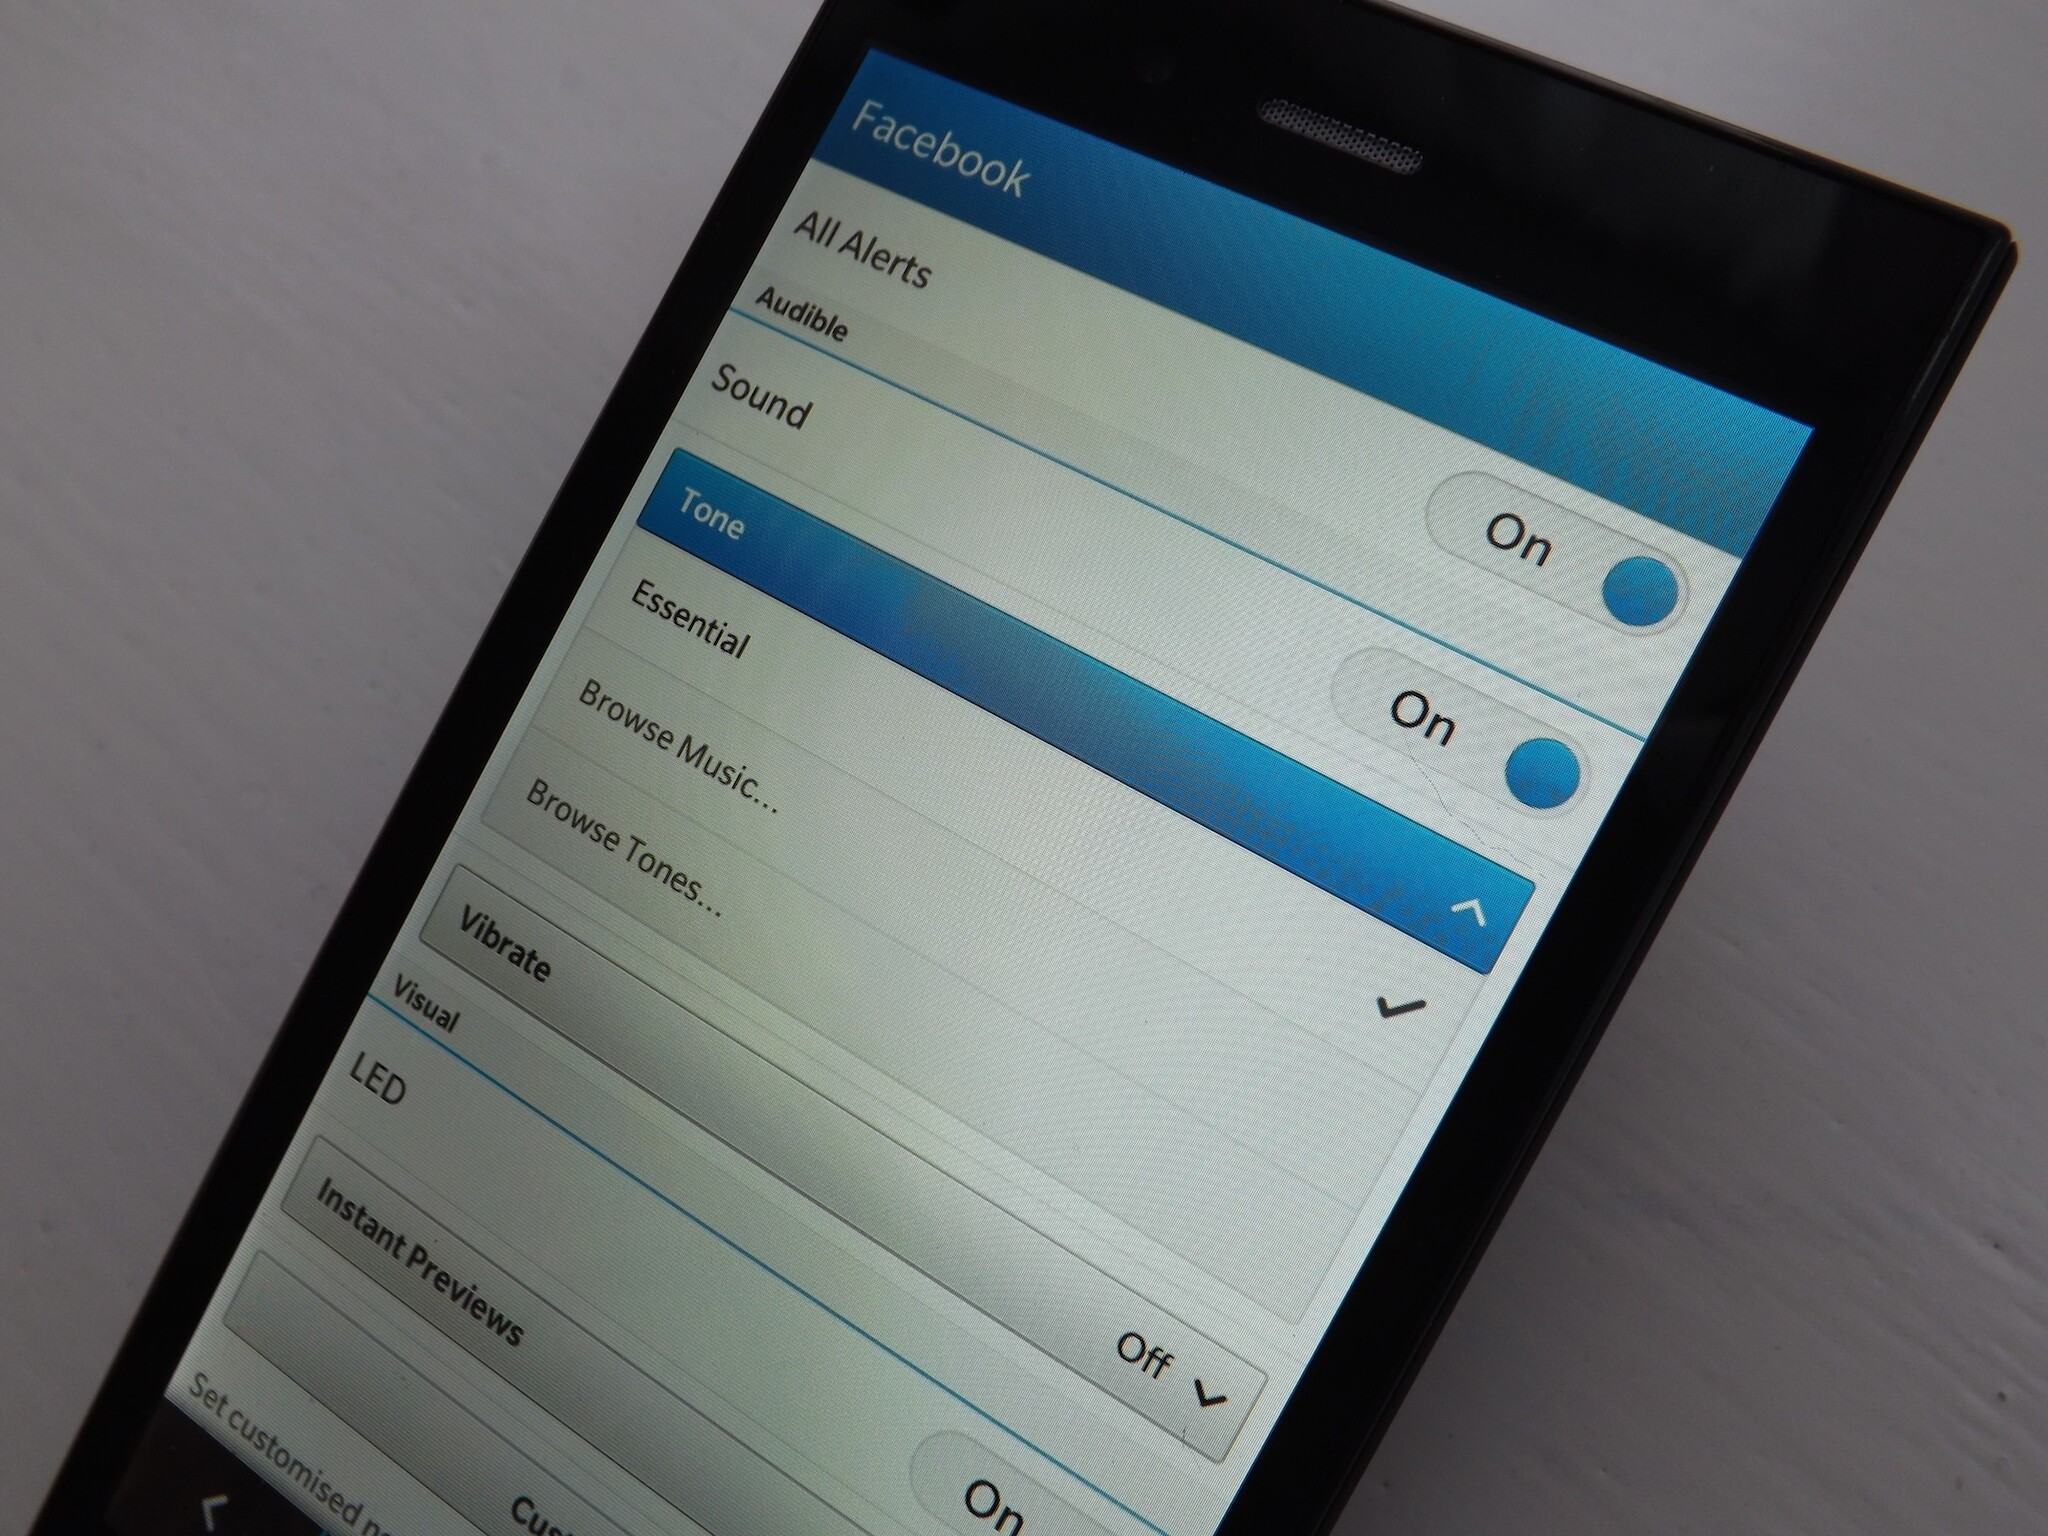 How To Change The Notification Tones On The Blackberry Z3